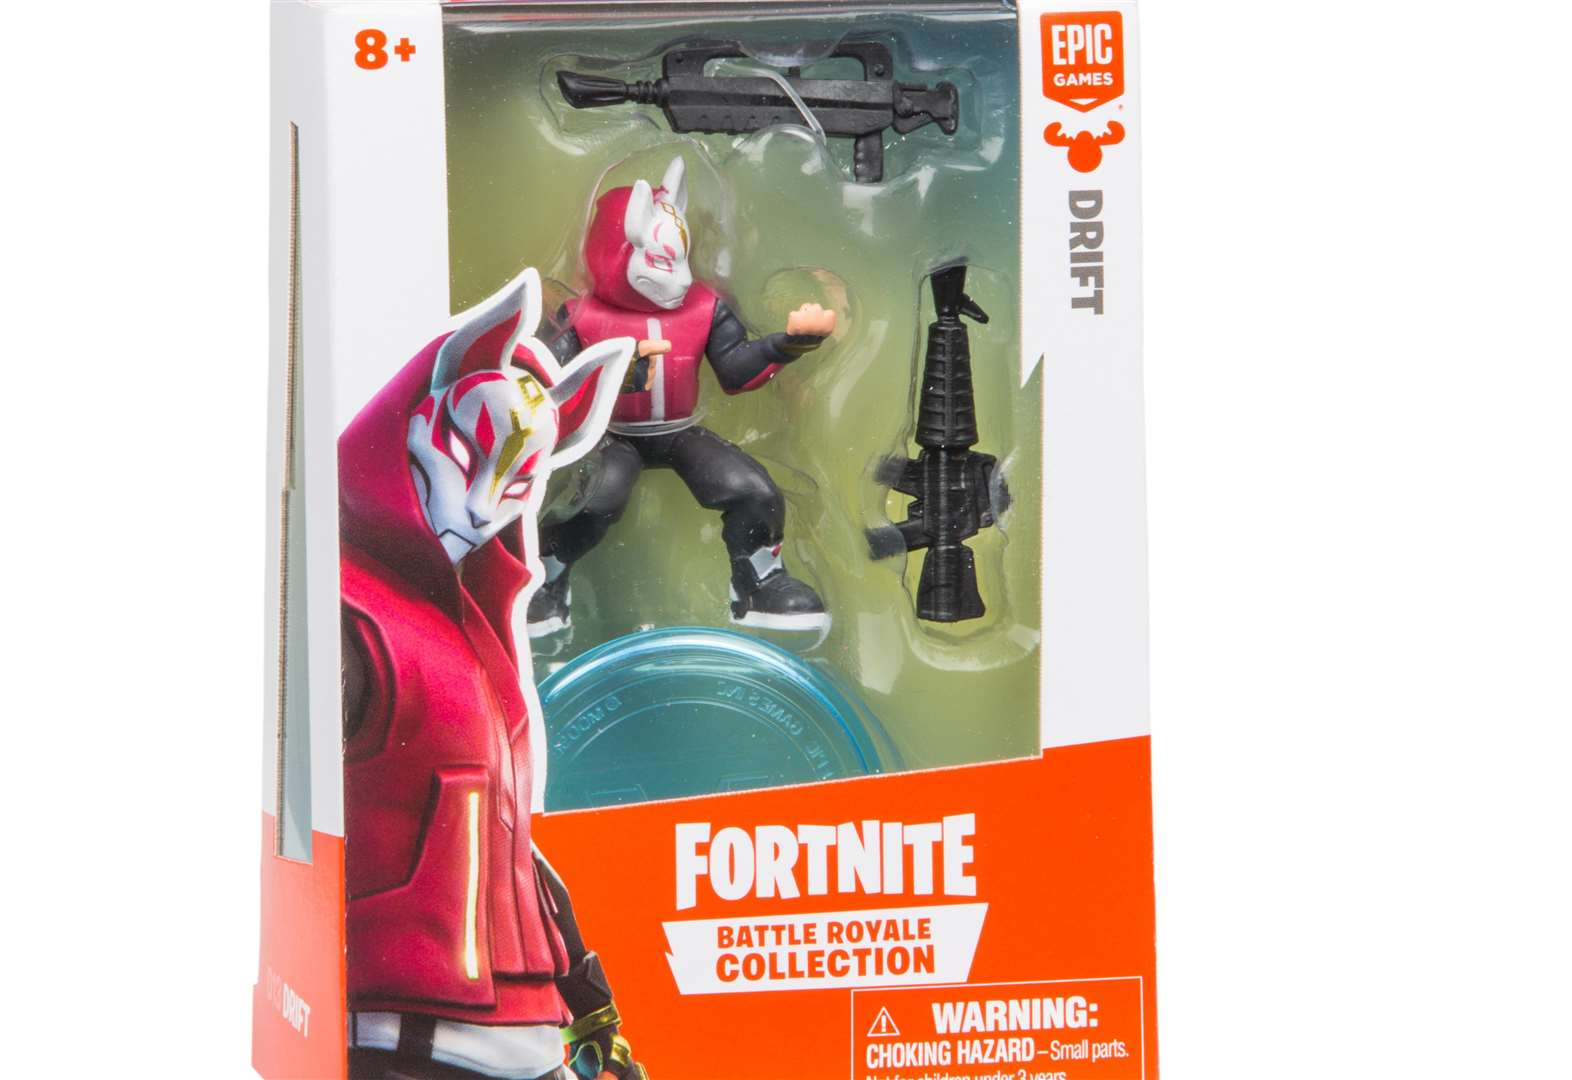 New Fortnite Battle Royale Collection Collectable Toys Go On Sale